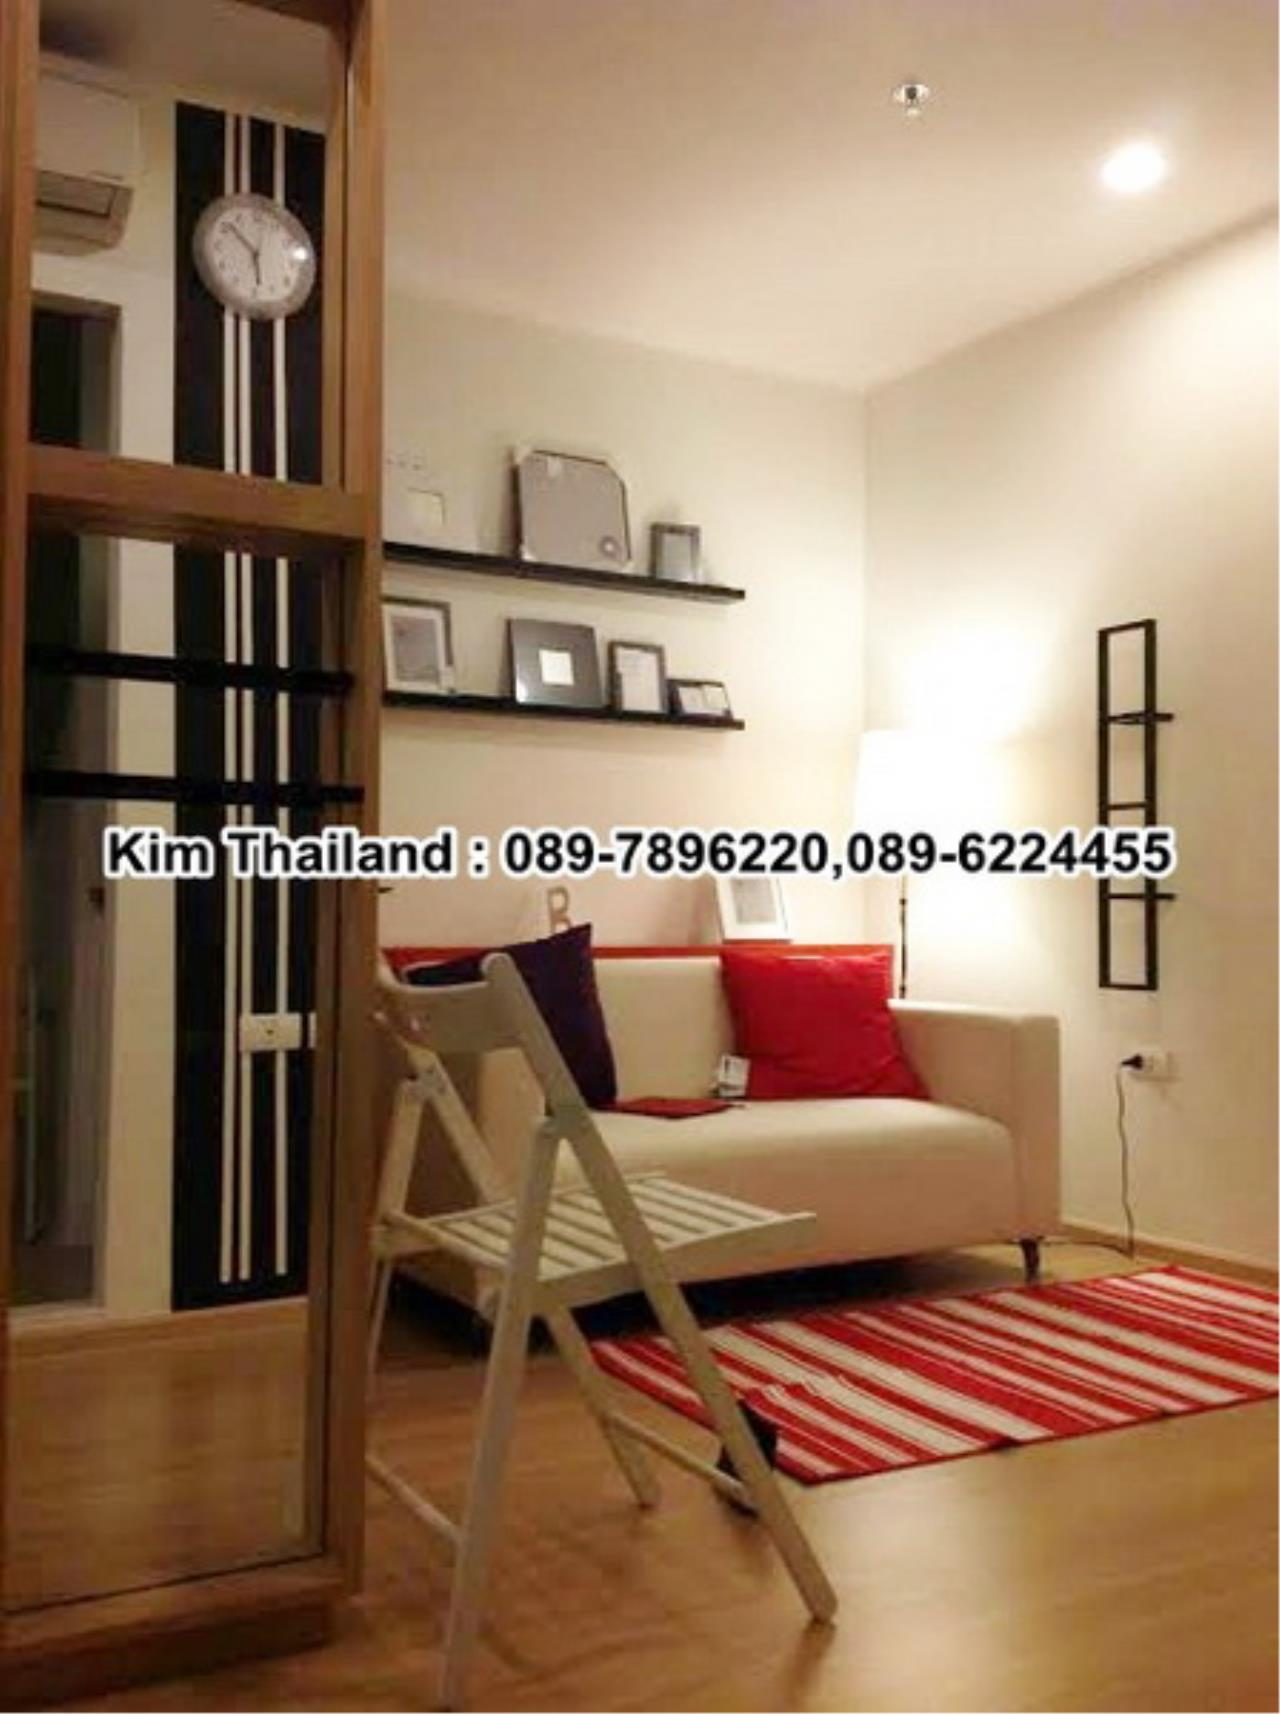 BKKcondorental Agency's For rent, Condo U Delight @ Bang Sue Station., Area 27 sq.m. 1 bedroom.Rental price 8000 THB per month. 3